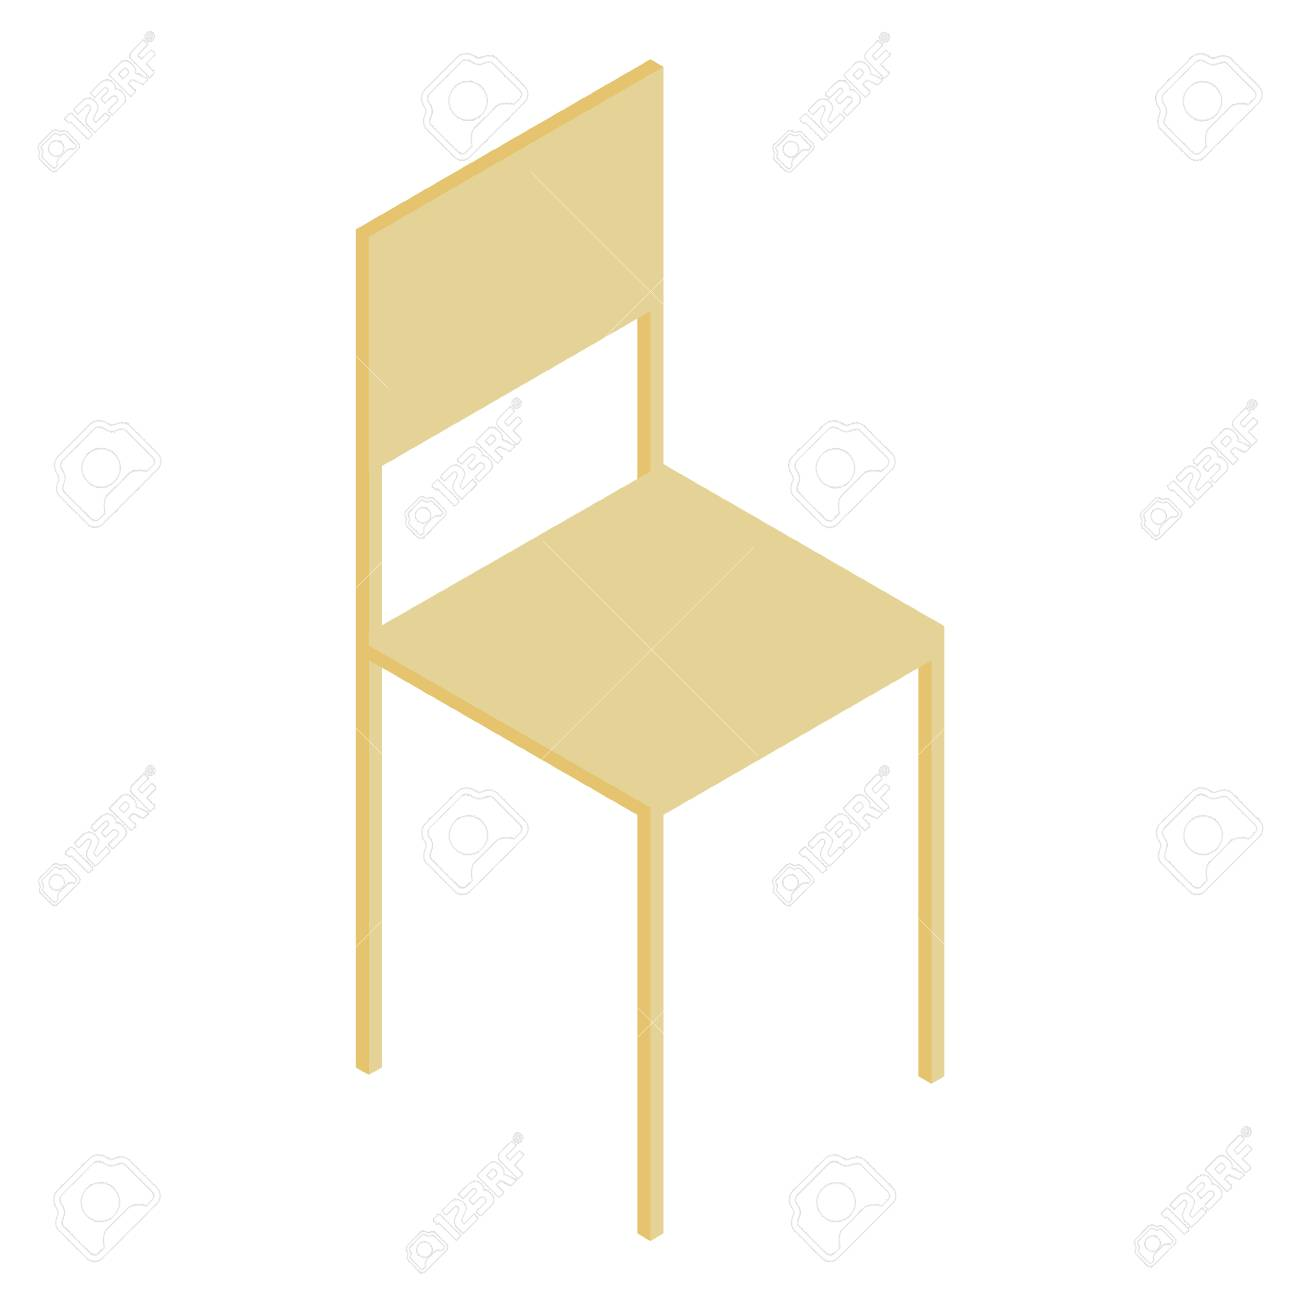 Vector illustration 3d isometric perspective wooden room chair...